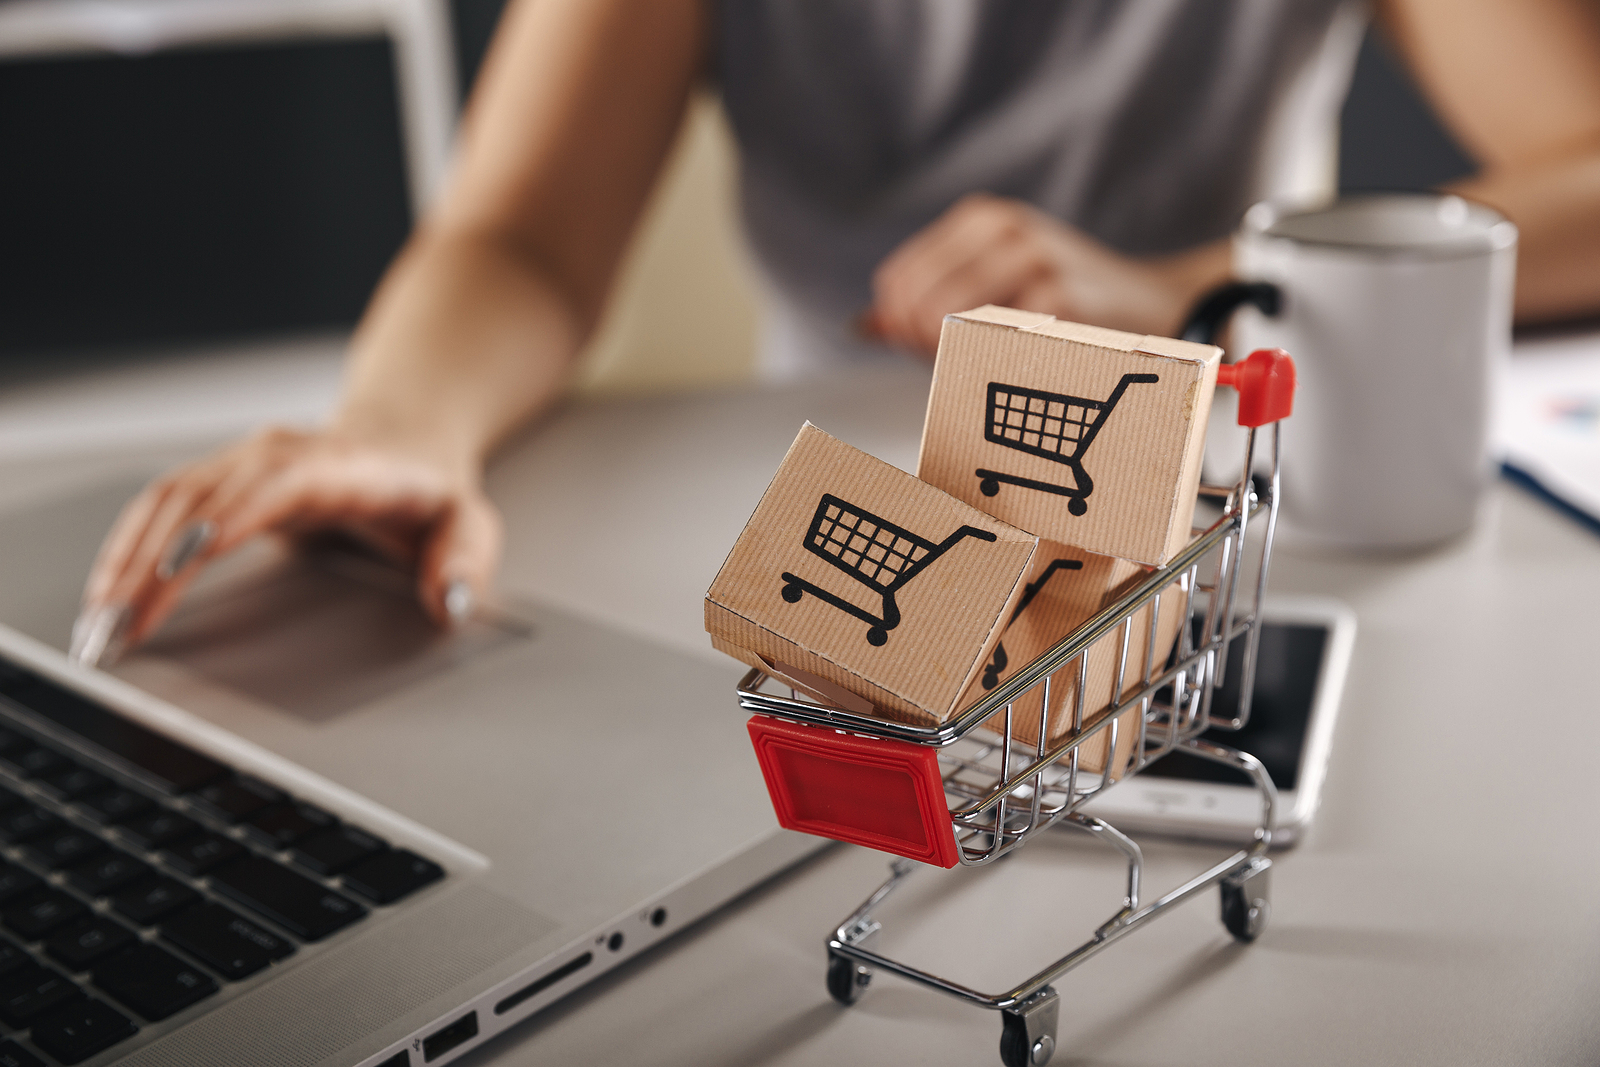 Long-Term Pandemic Impact on Online Retail